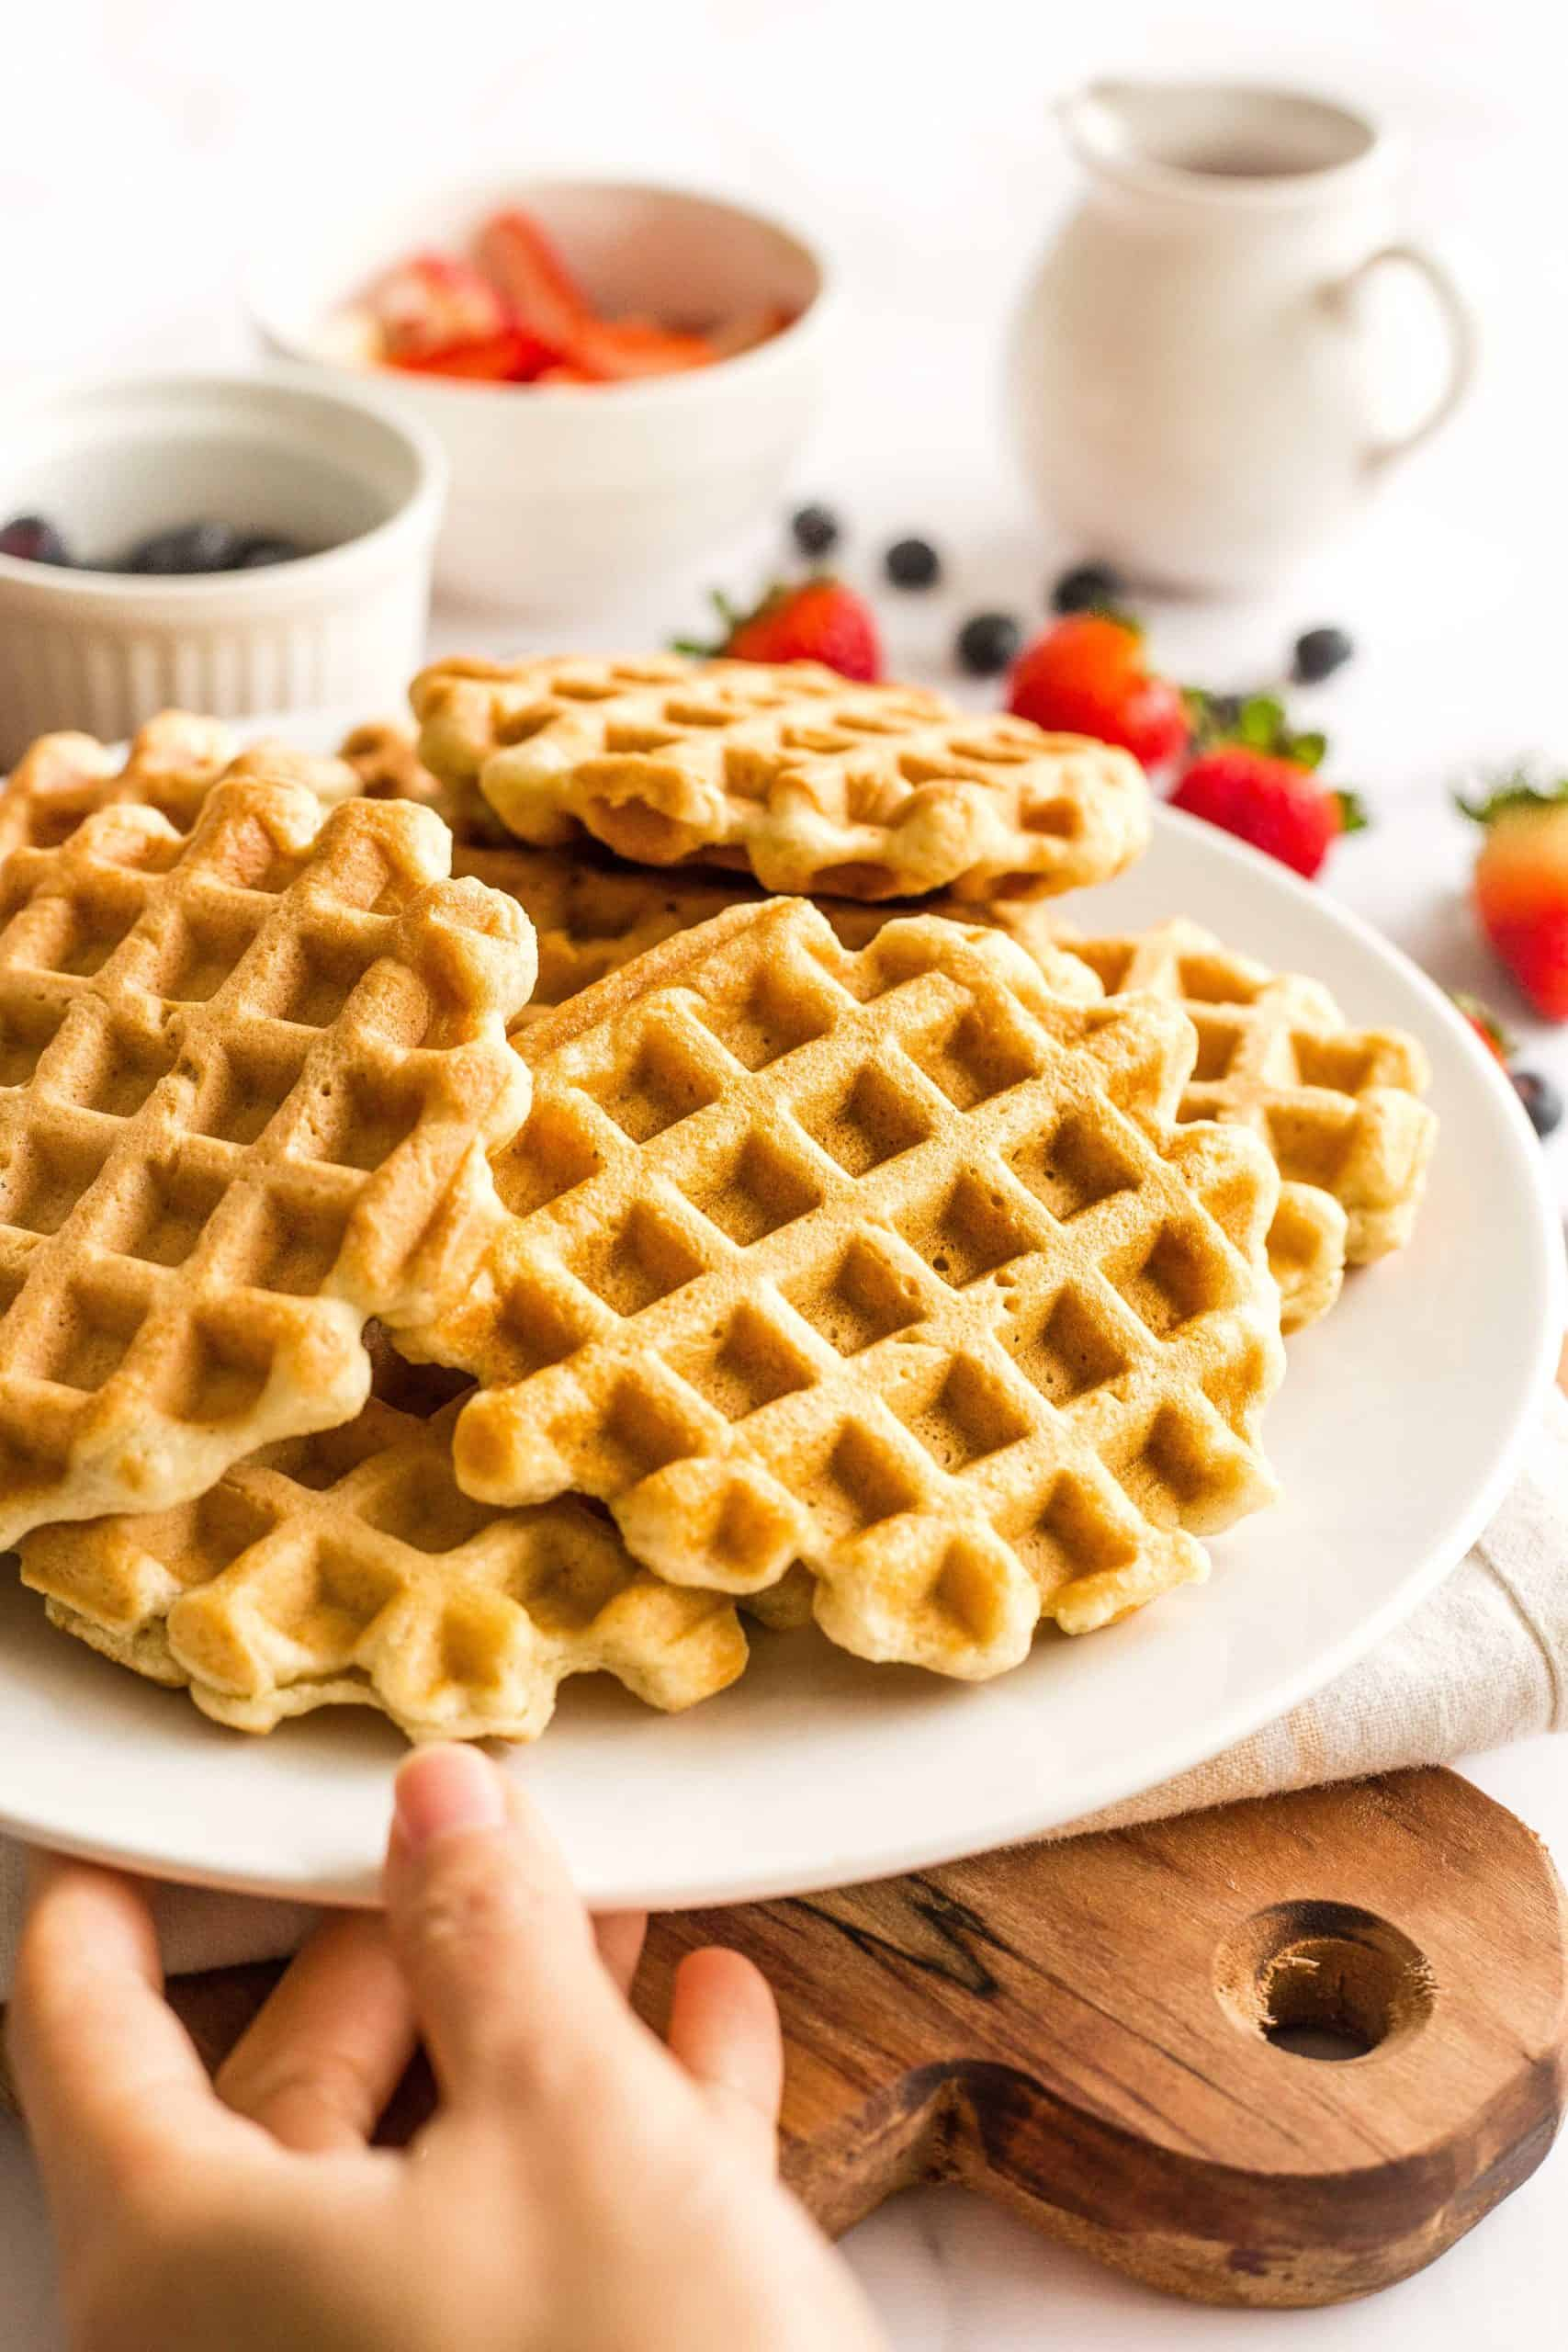 Hand holding a plate full of freshly cooked golden brown gluten-free waffles.